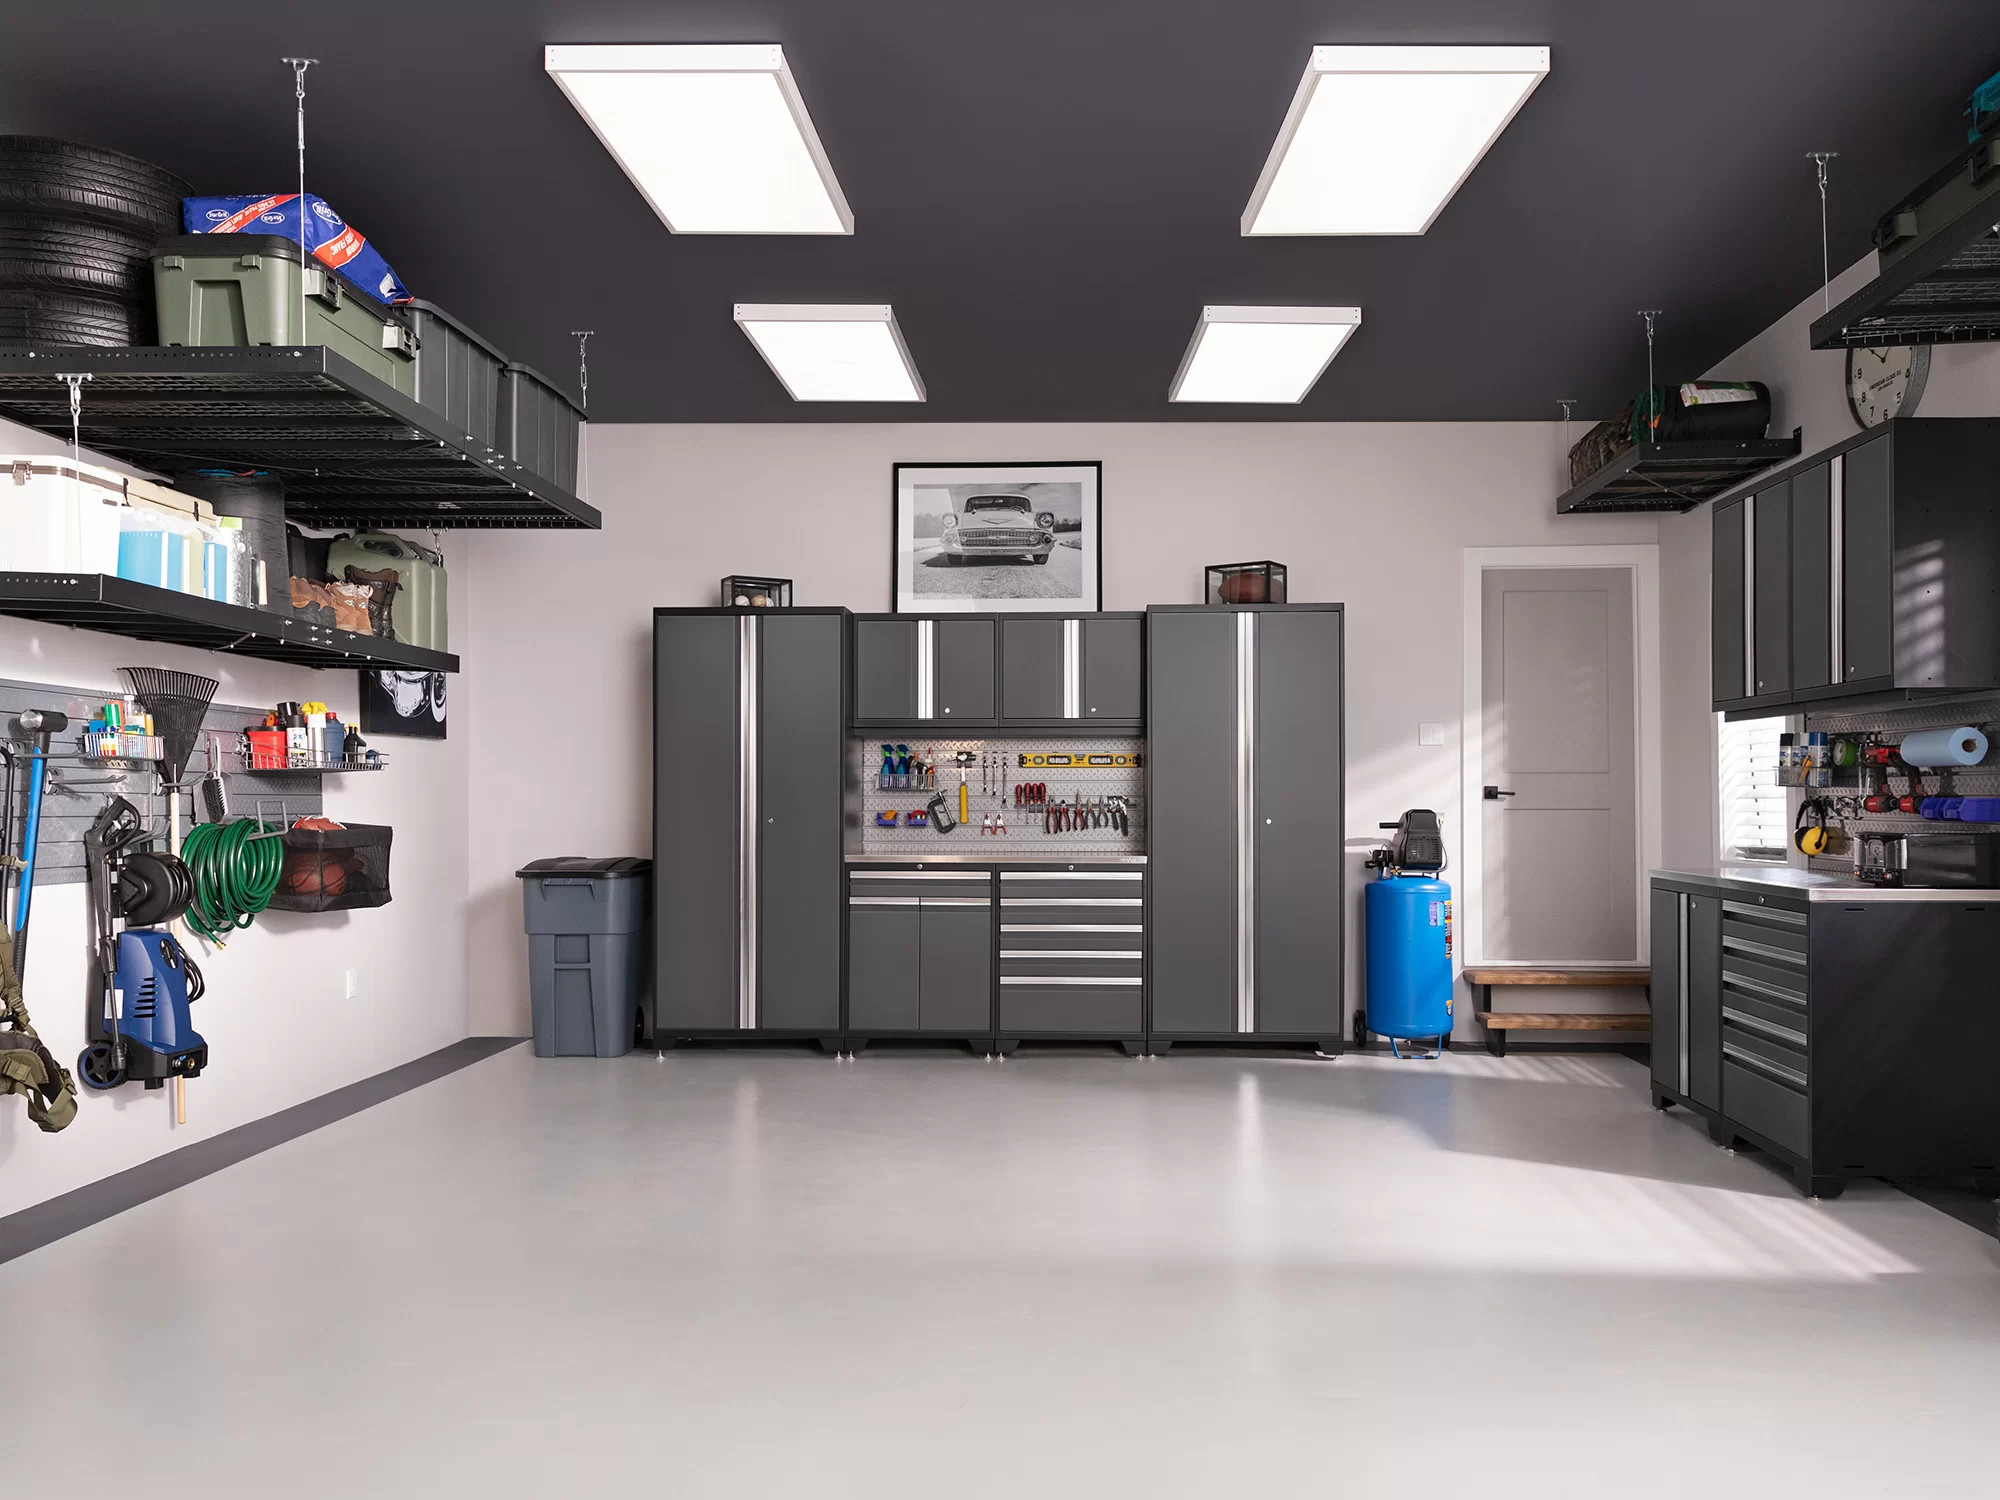 Garage Storage Systems: Benefits, Advantages, and Tips